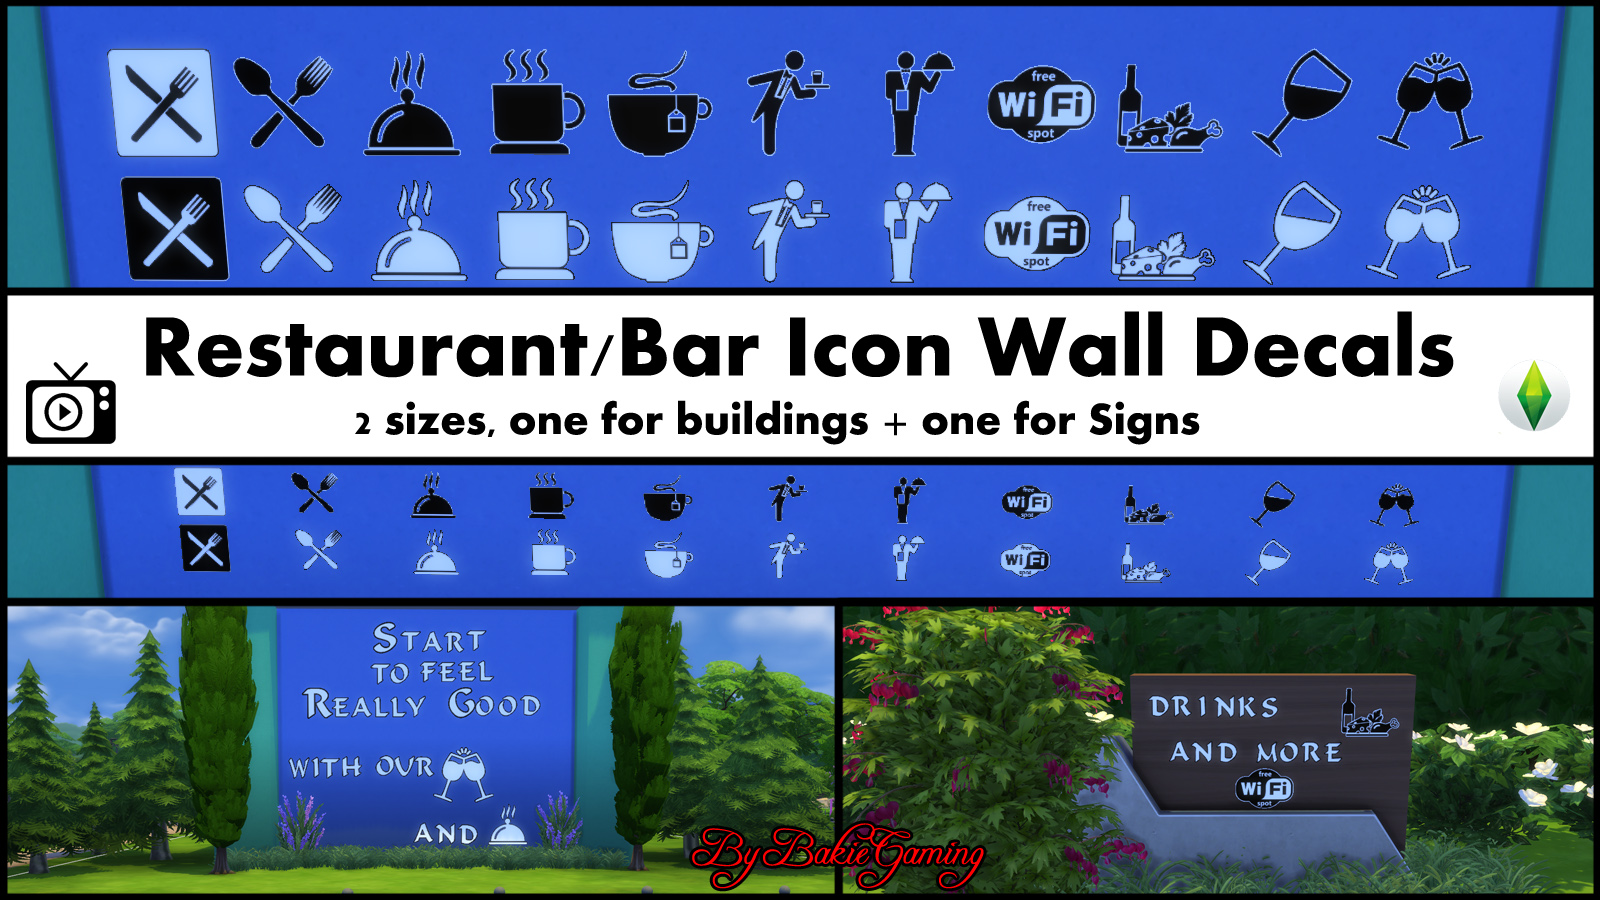 After my alphabet wall decals i needed some icons to fill up empty spaces on the buildings and empty signs so i started to make my first